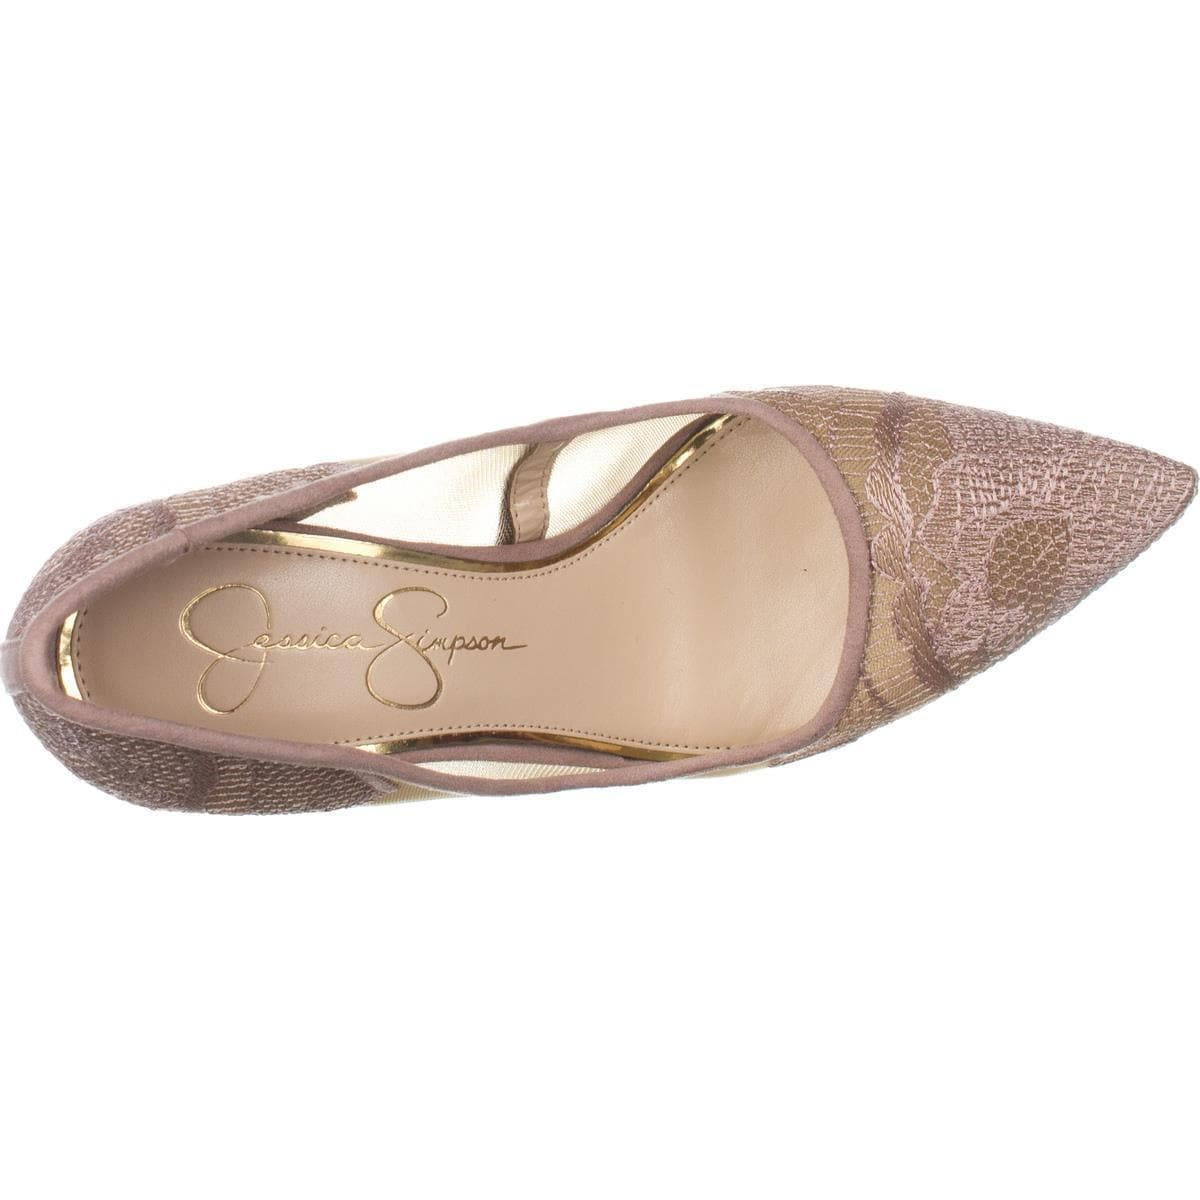 de6d987af0a Jessica Simpson Camba Mesh Pointed Toe Pumps, Sheer Nude Blush